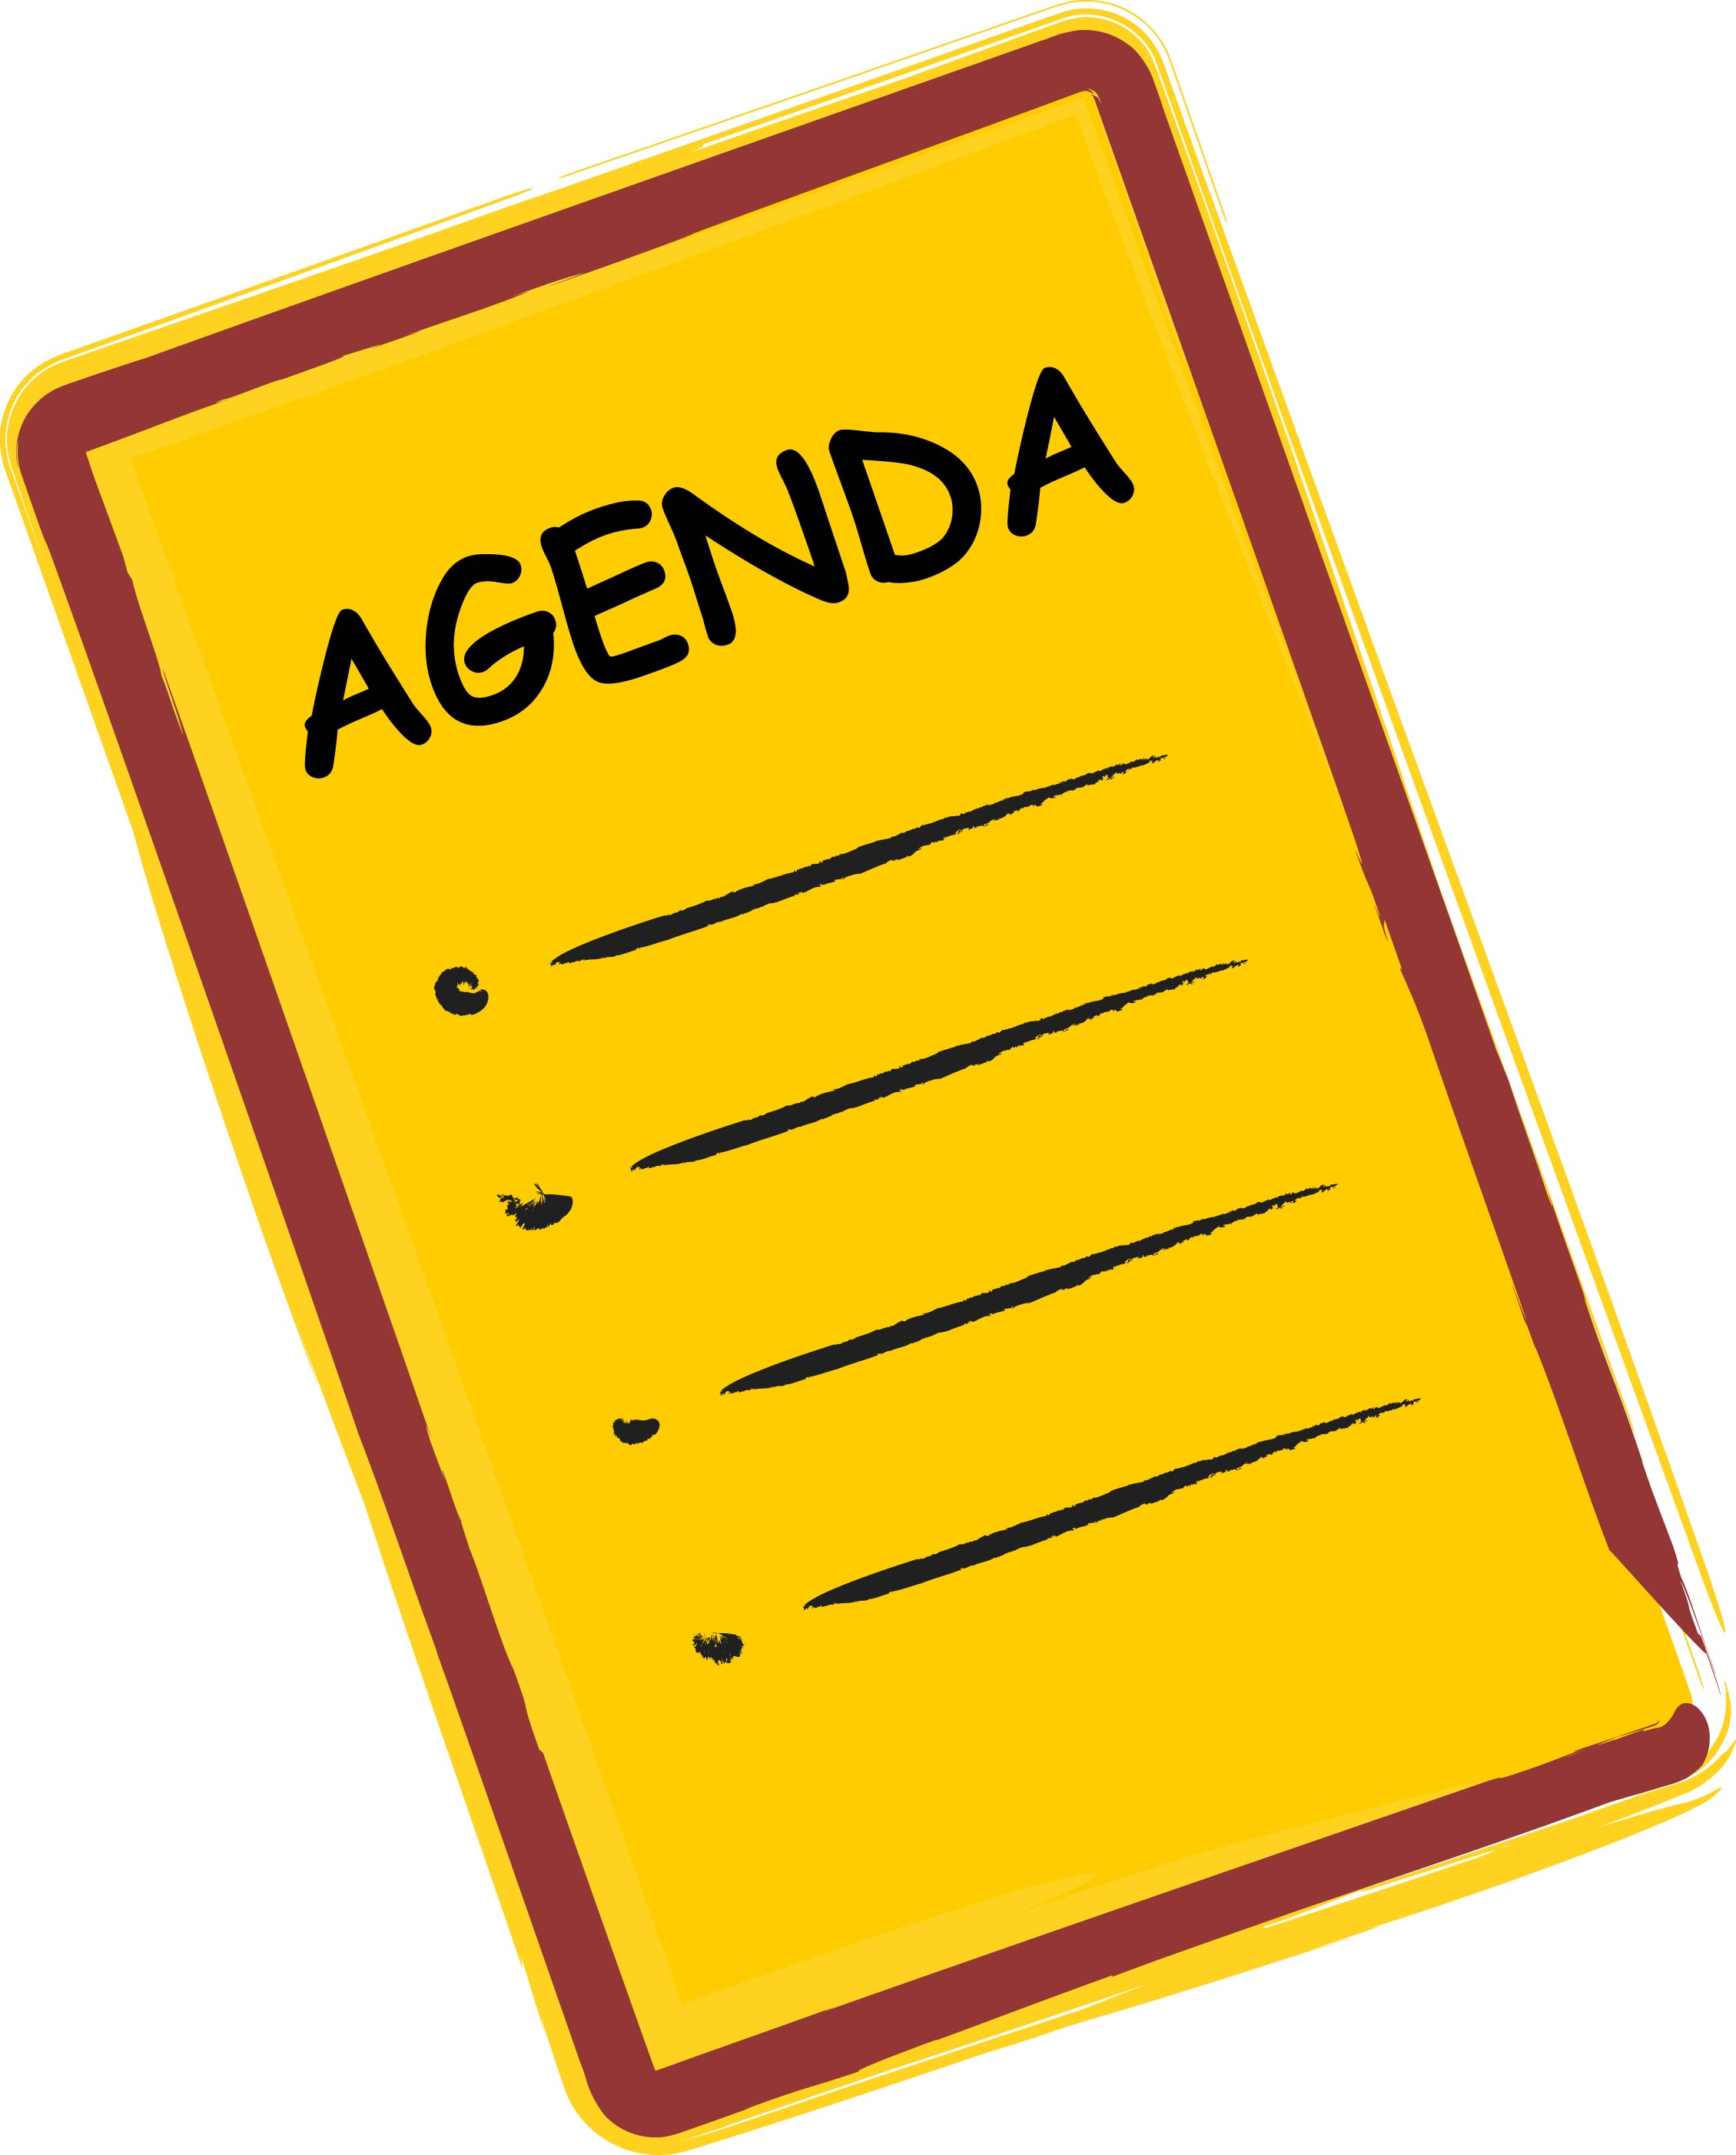 agendas planners images. Planner clipart animated